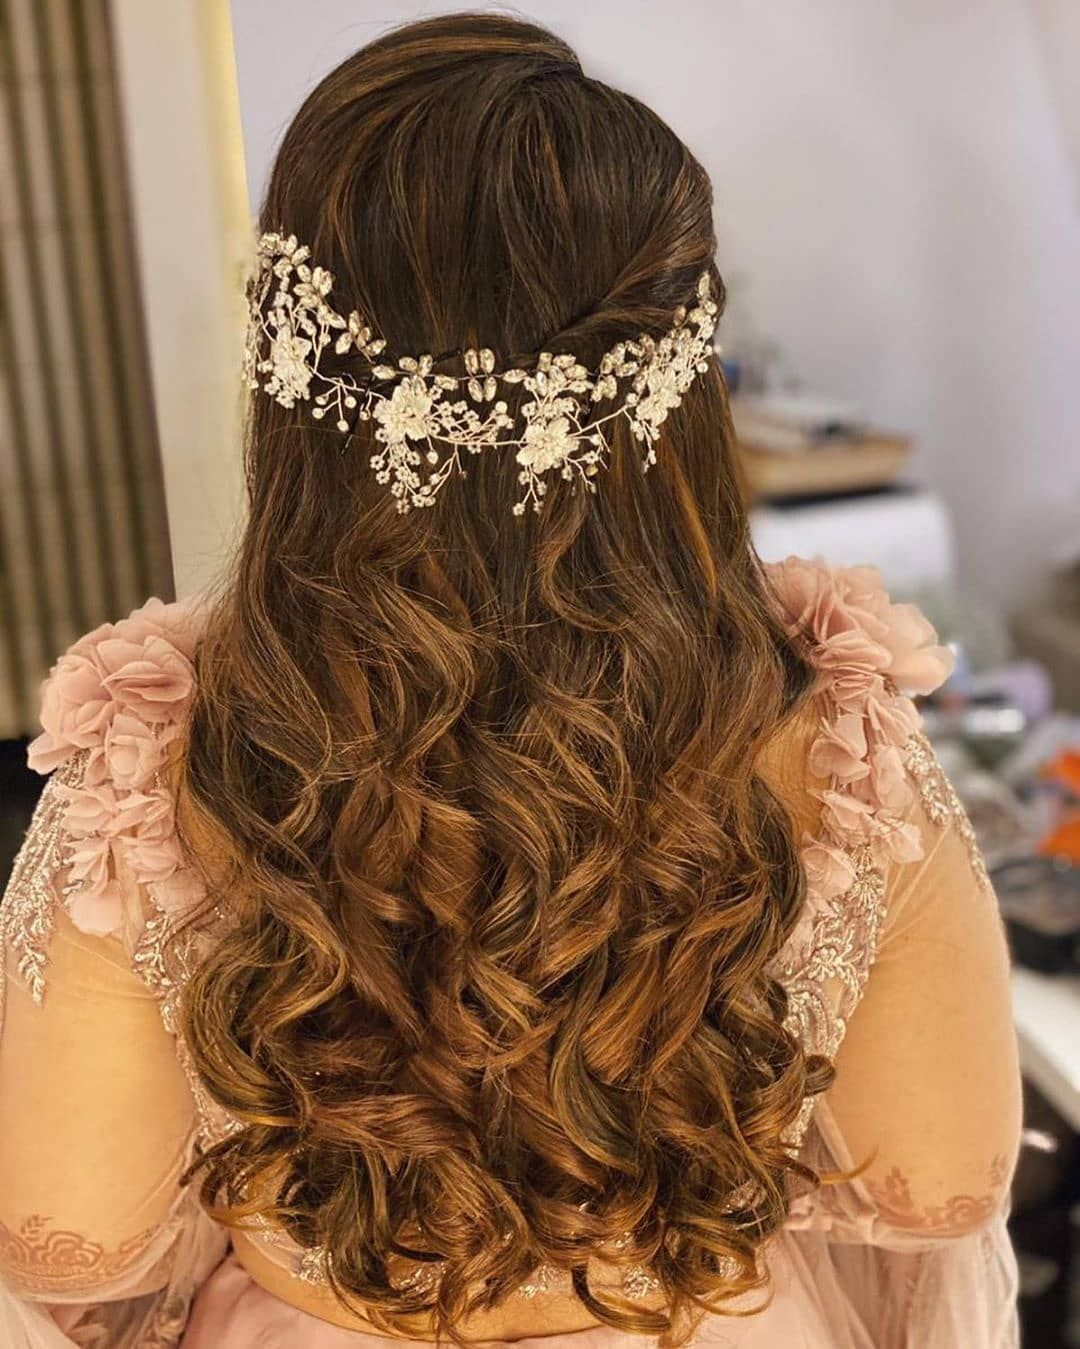 Inspiring indian wedding hairstyles for long hair you must